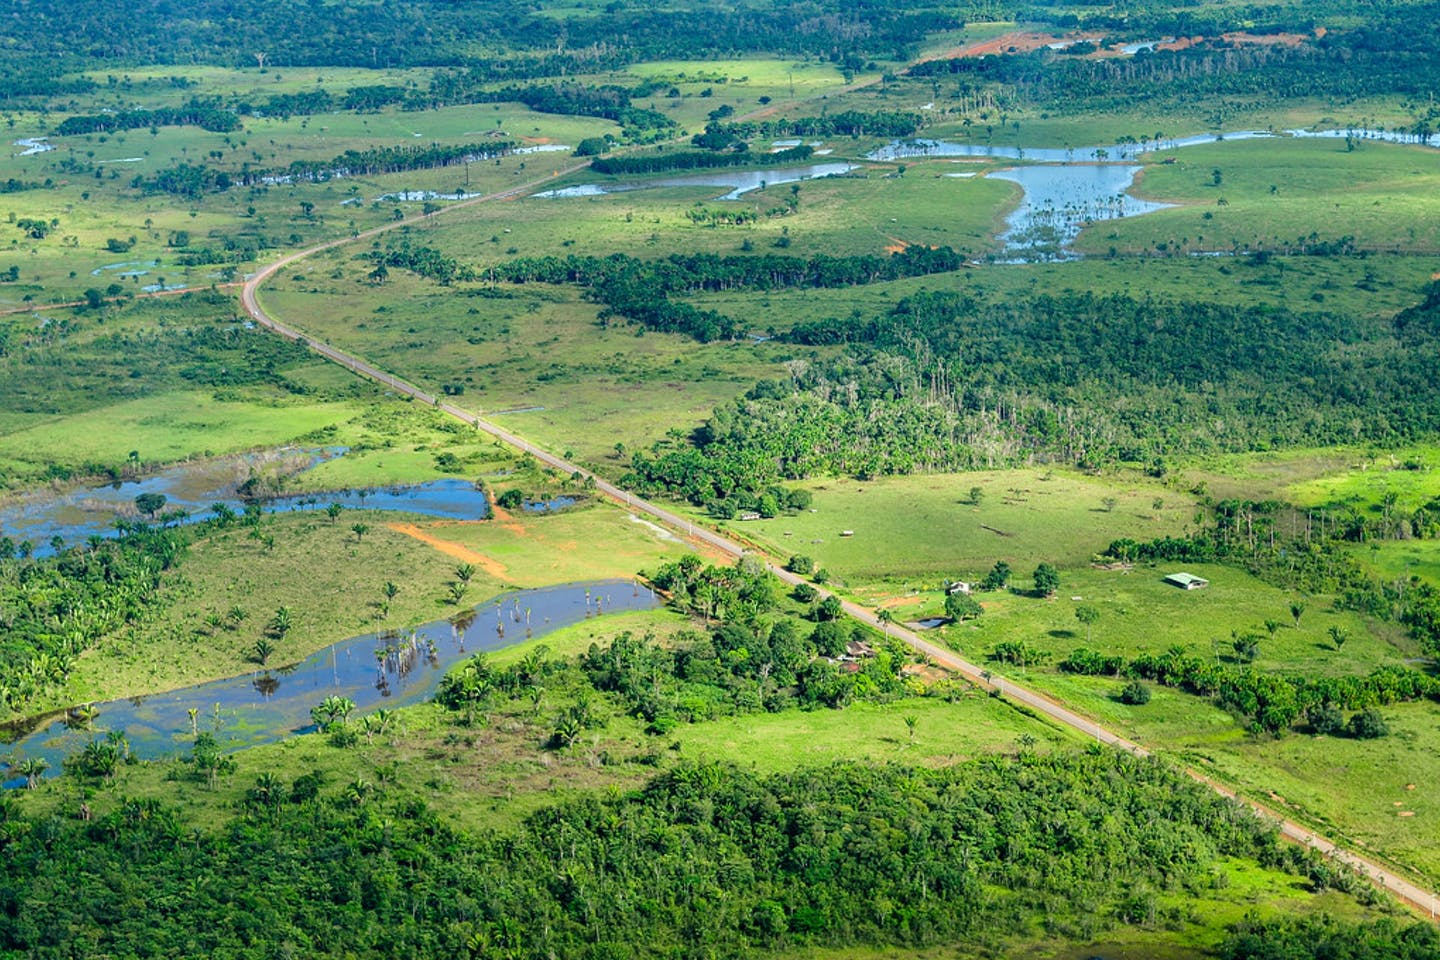 Amazon rainforest near Manaus